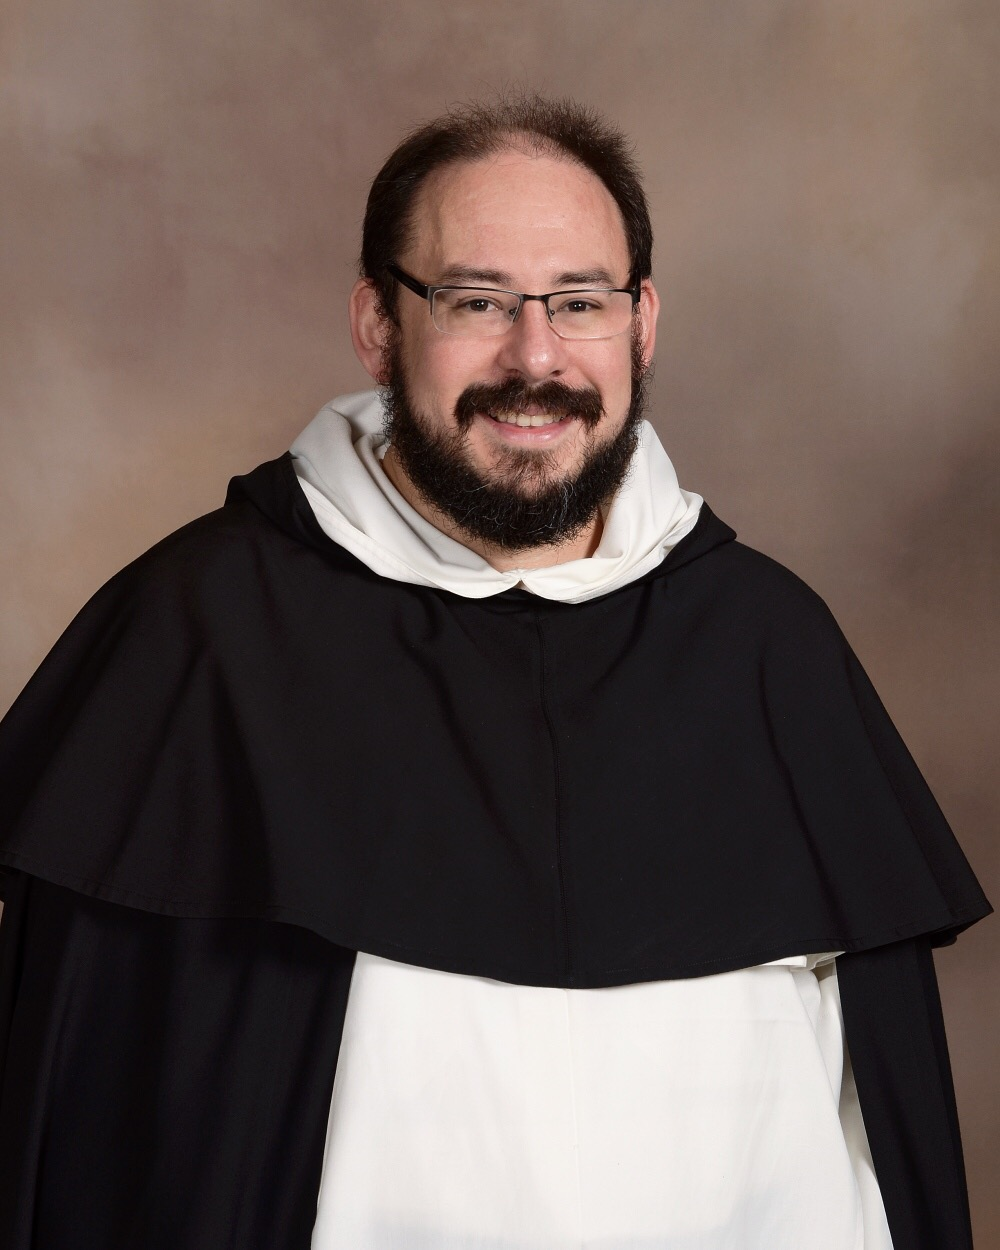 Vocations Focus - NOV. 2nd